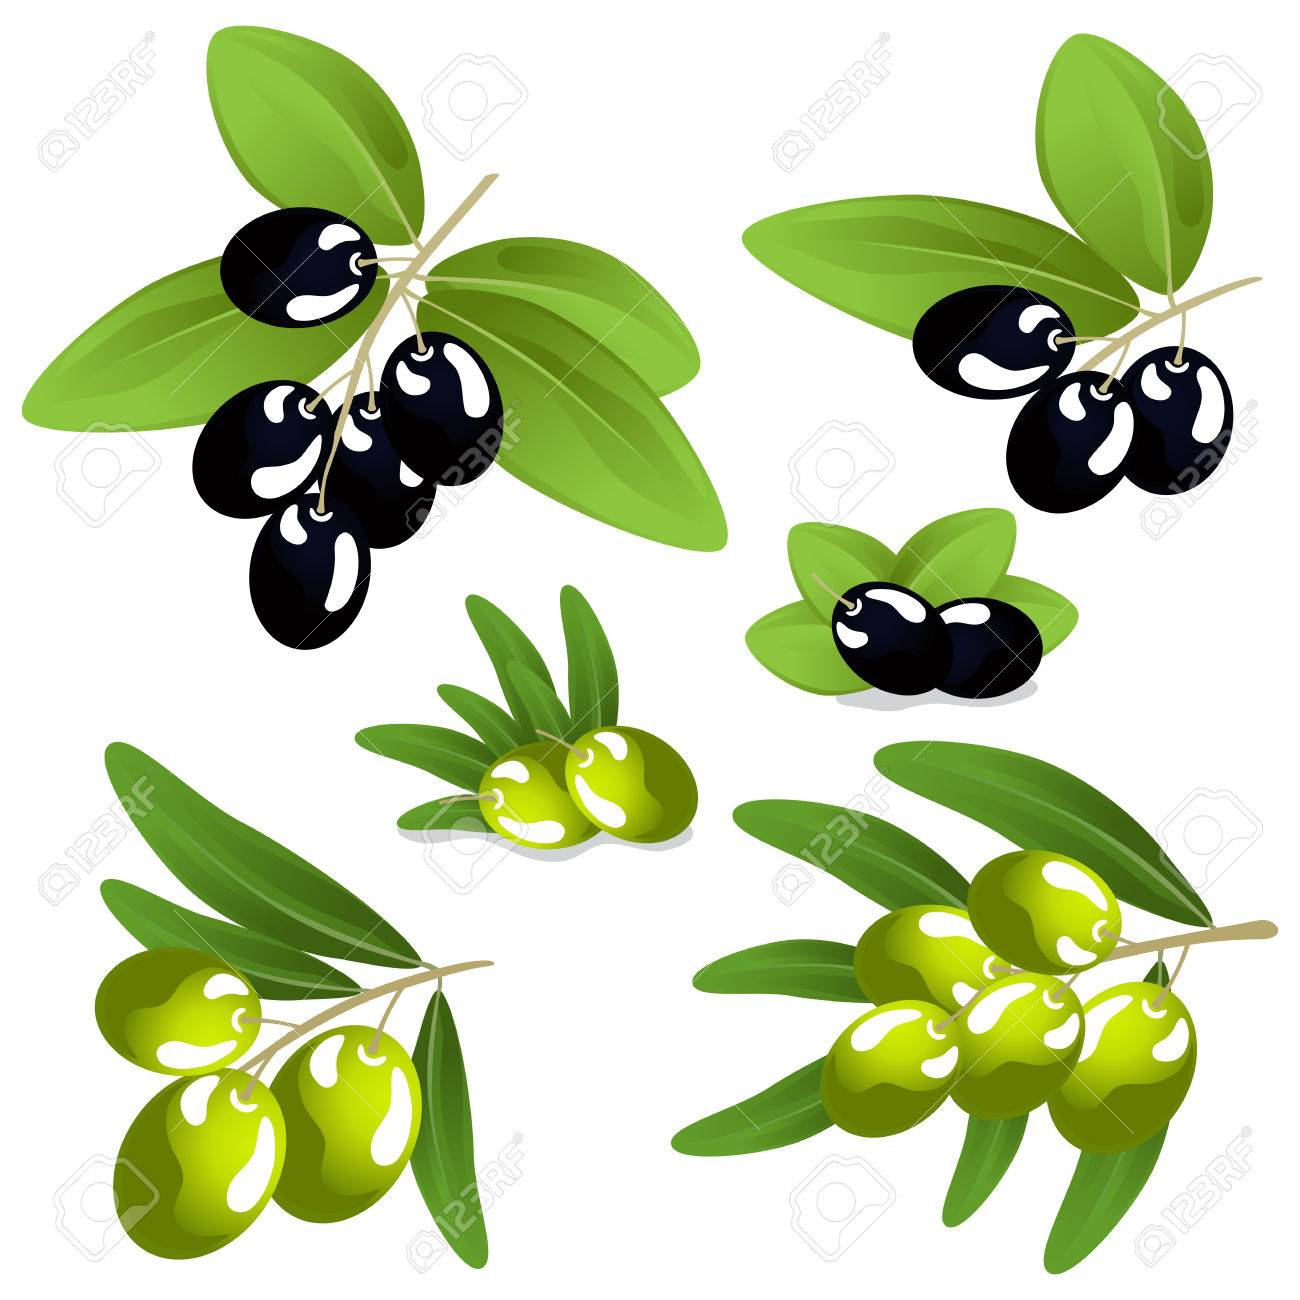 olives closeup on white background Stock Vector - 23670138